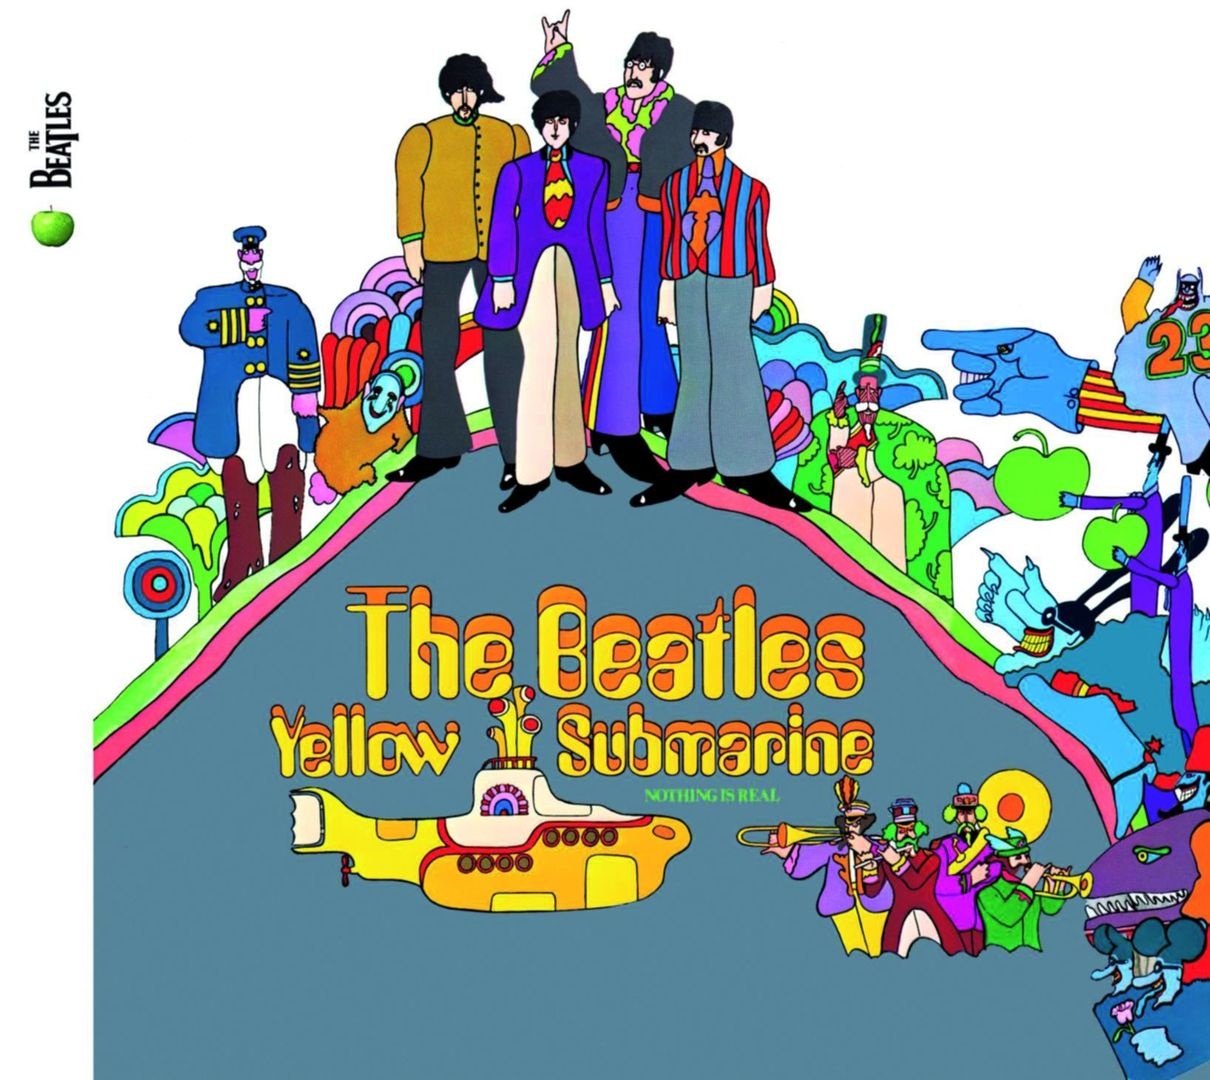 Sonderbar: Yellow Submarine (1969)